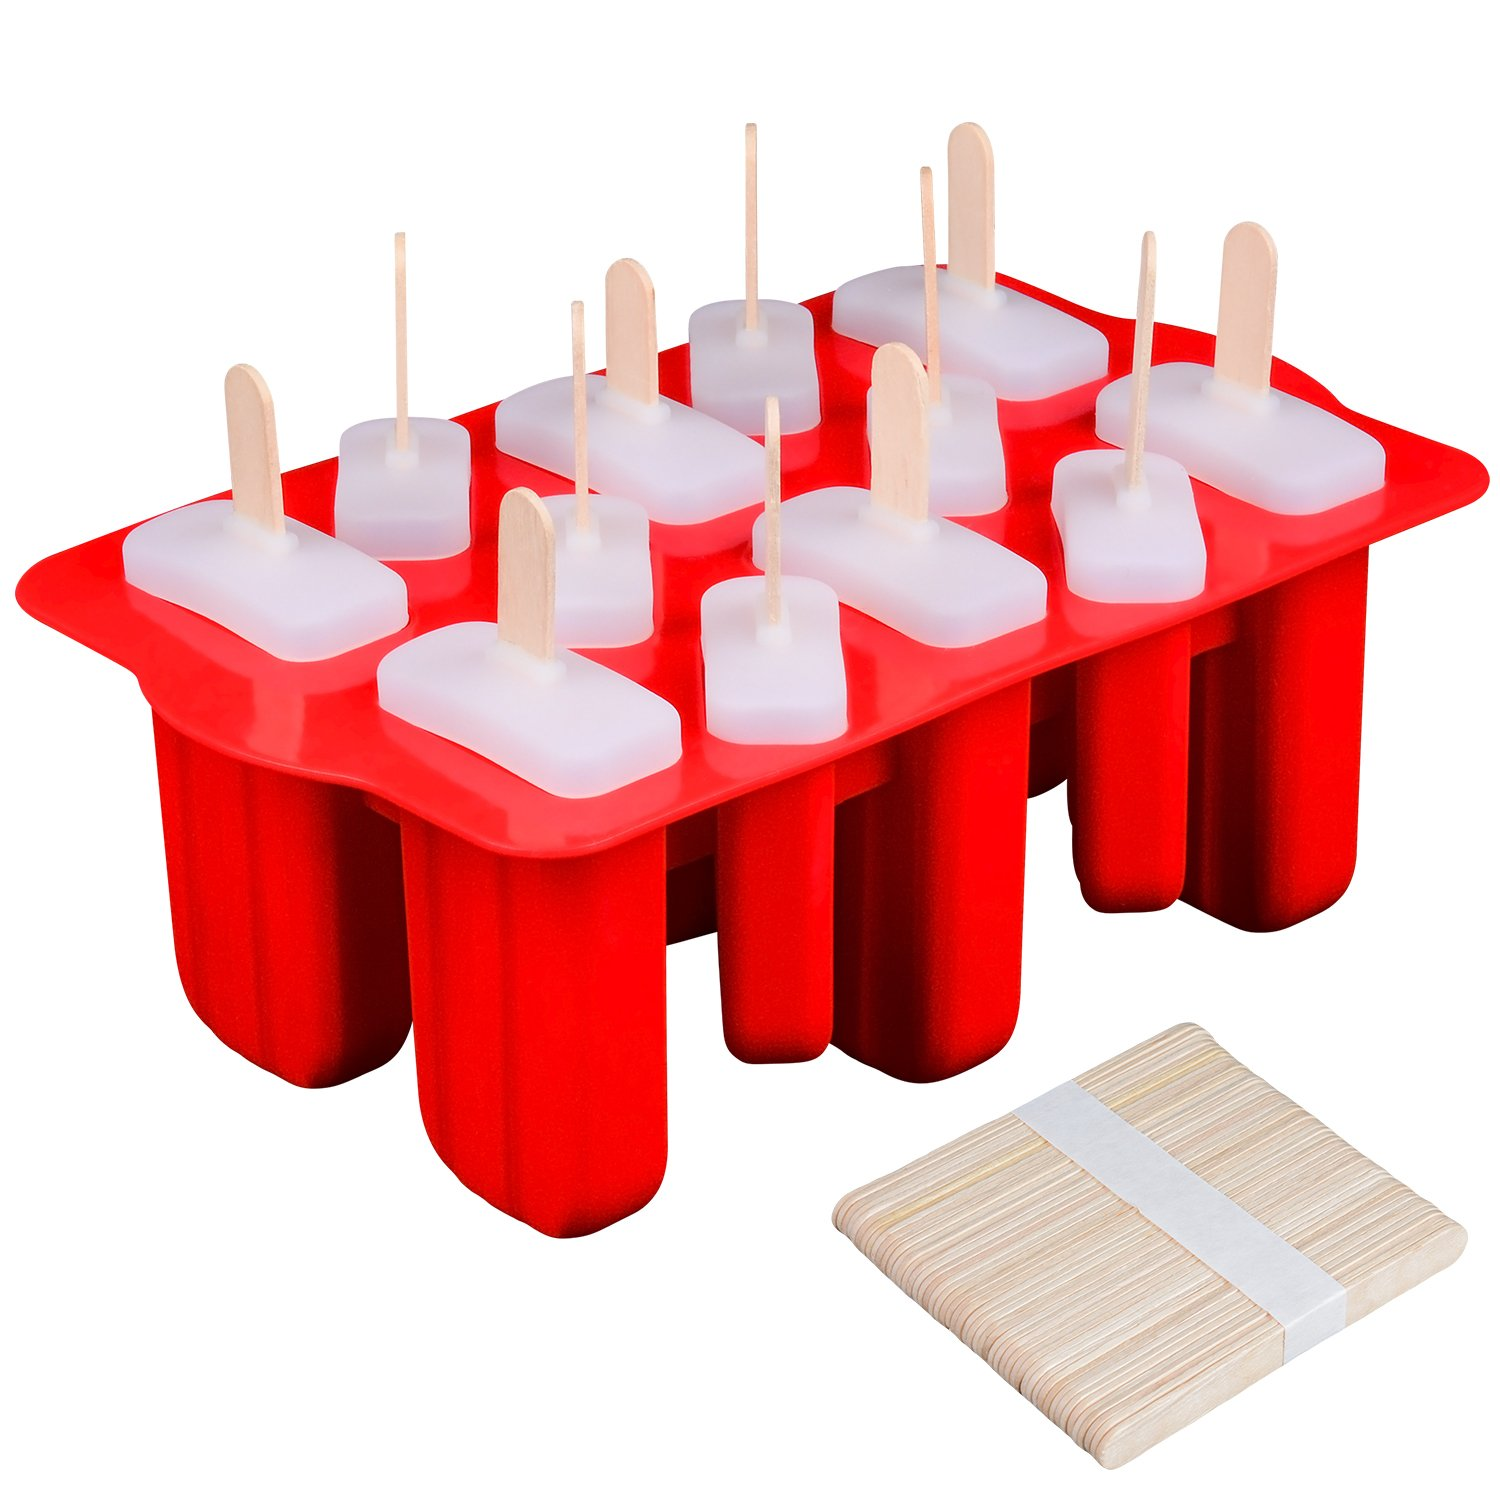 SJ Ice Popsicle Molds Silicone Handmade Fruit Juice Milk Coffee Ice Pop Molds Ice Cream Set with 50 Pcs Wooden Sticks for Kids and Adults, BPA Free(Red)